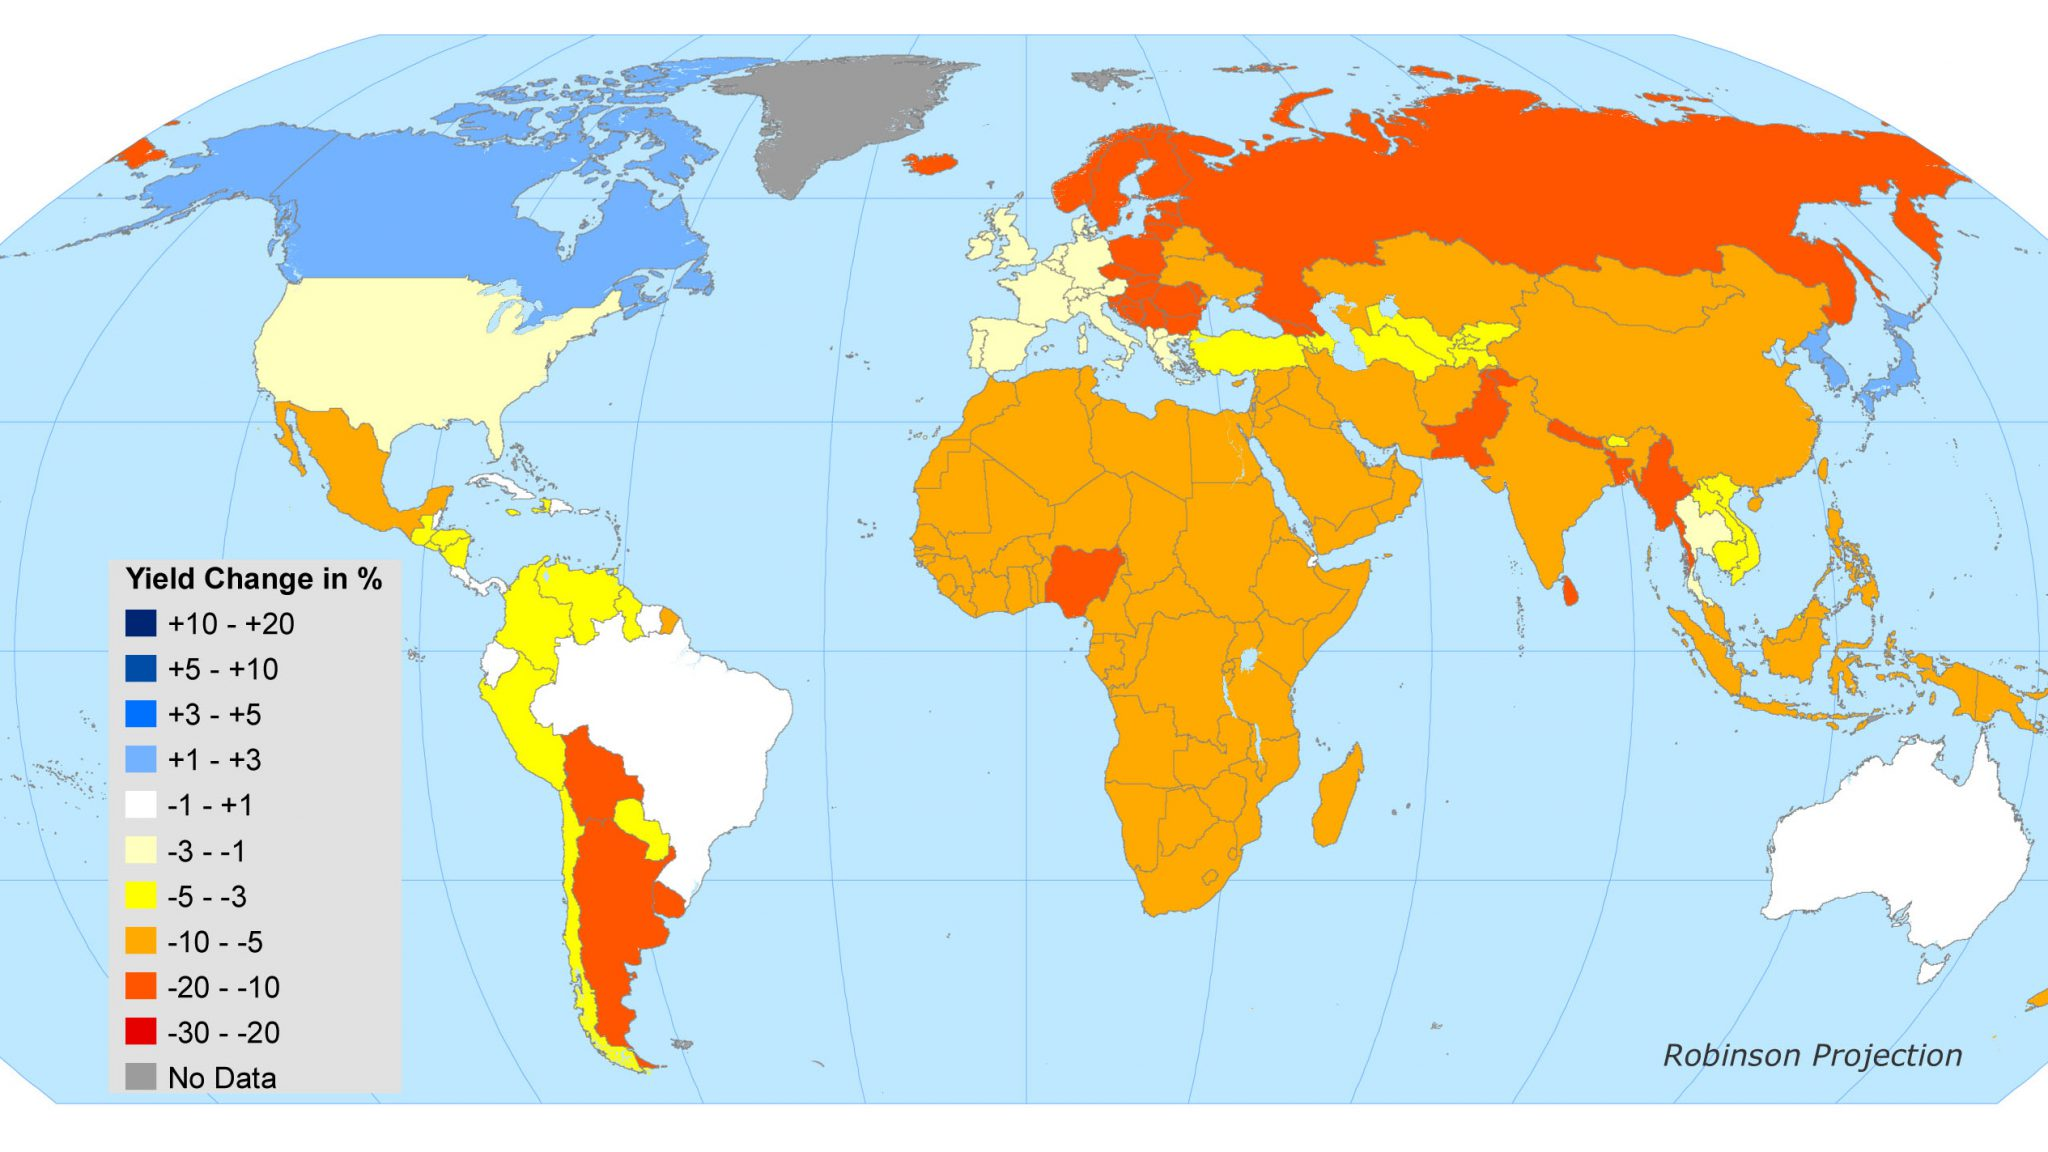 Global map indicating yield change in %